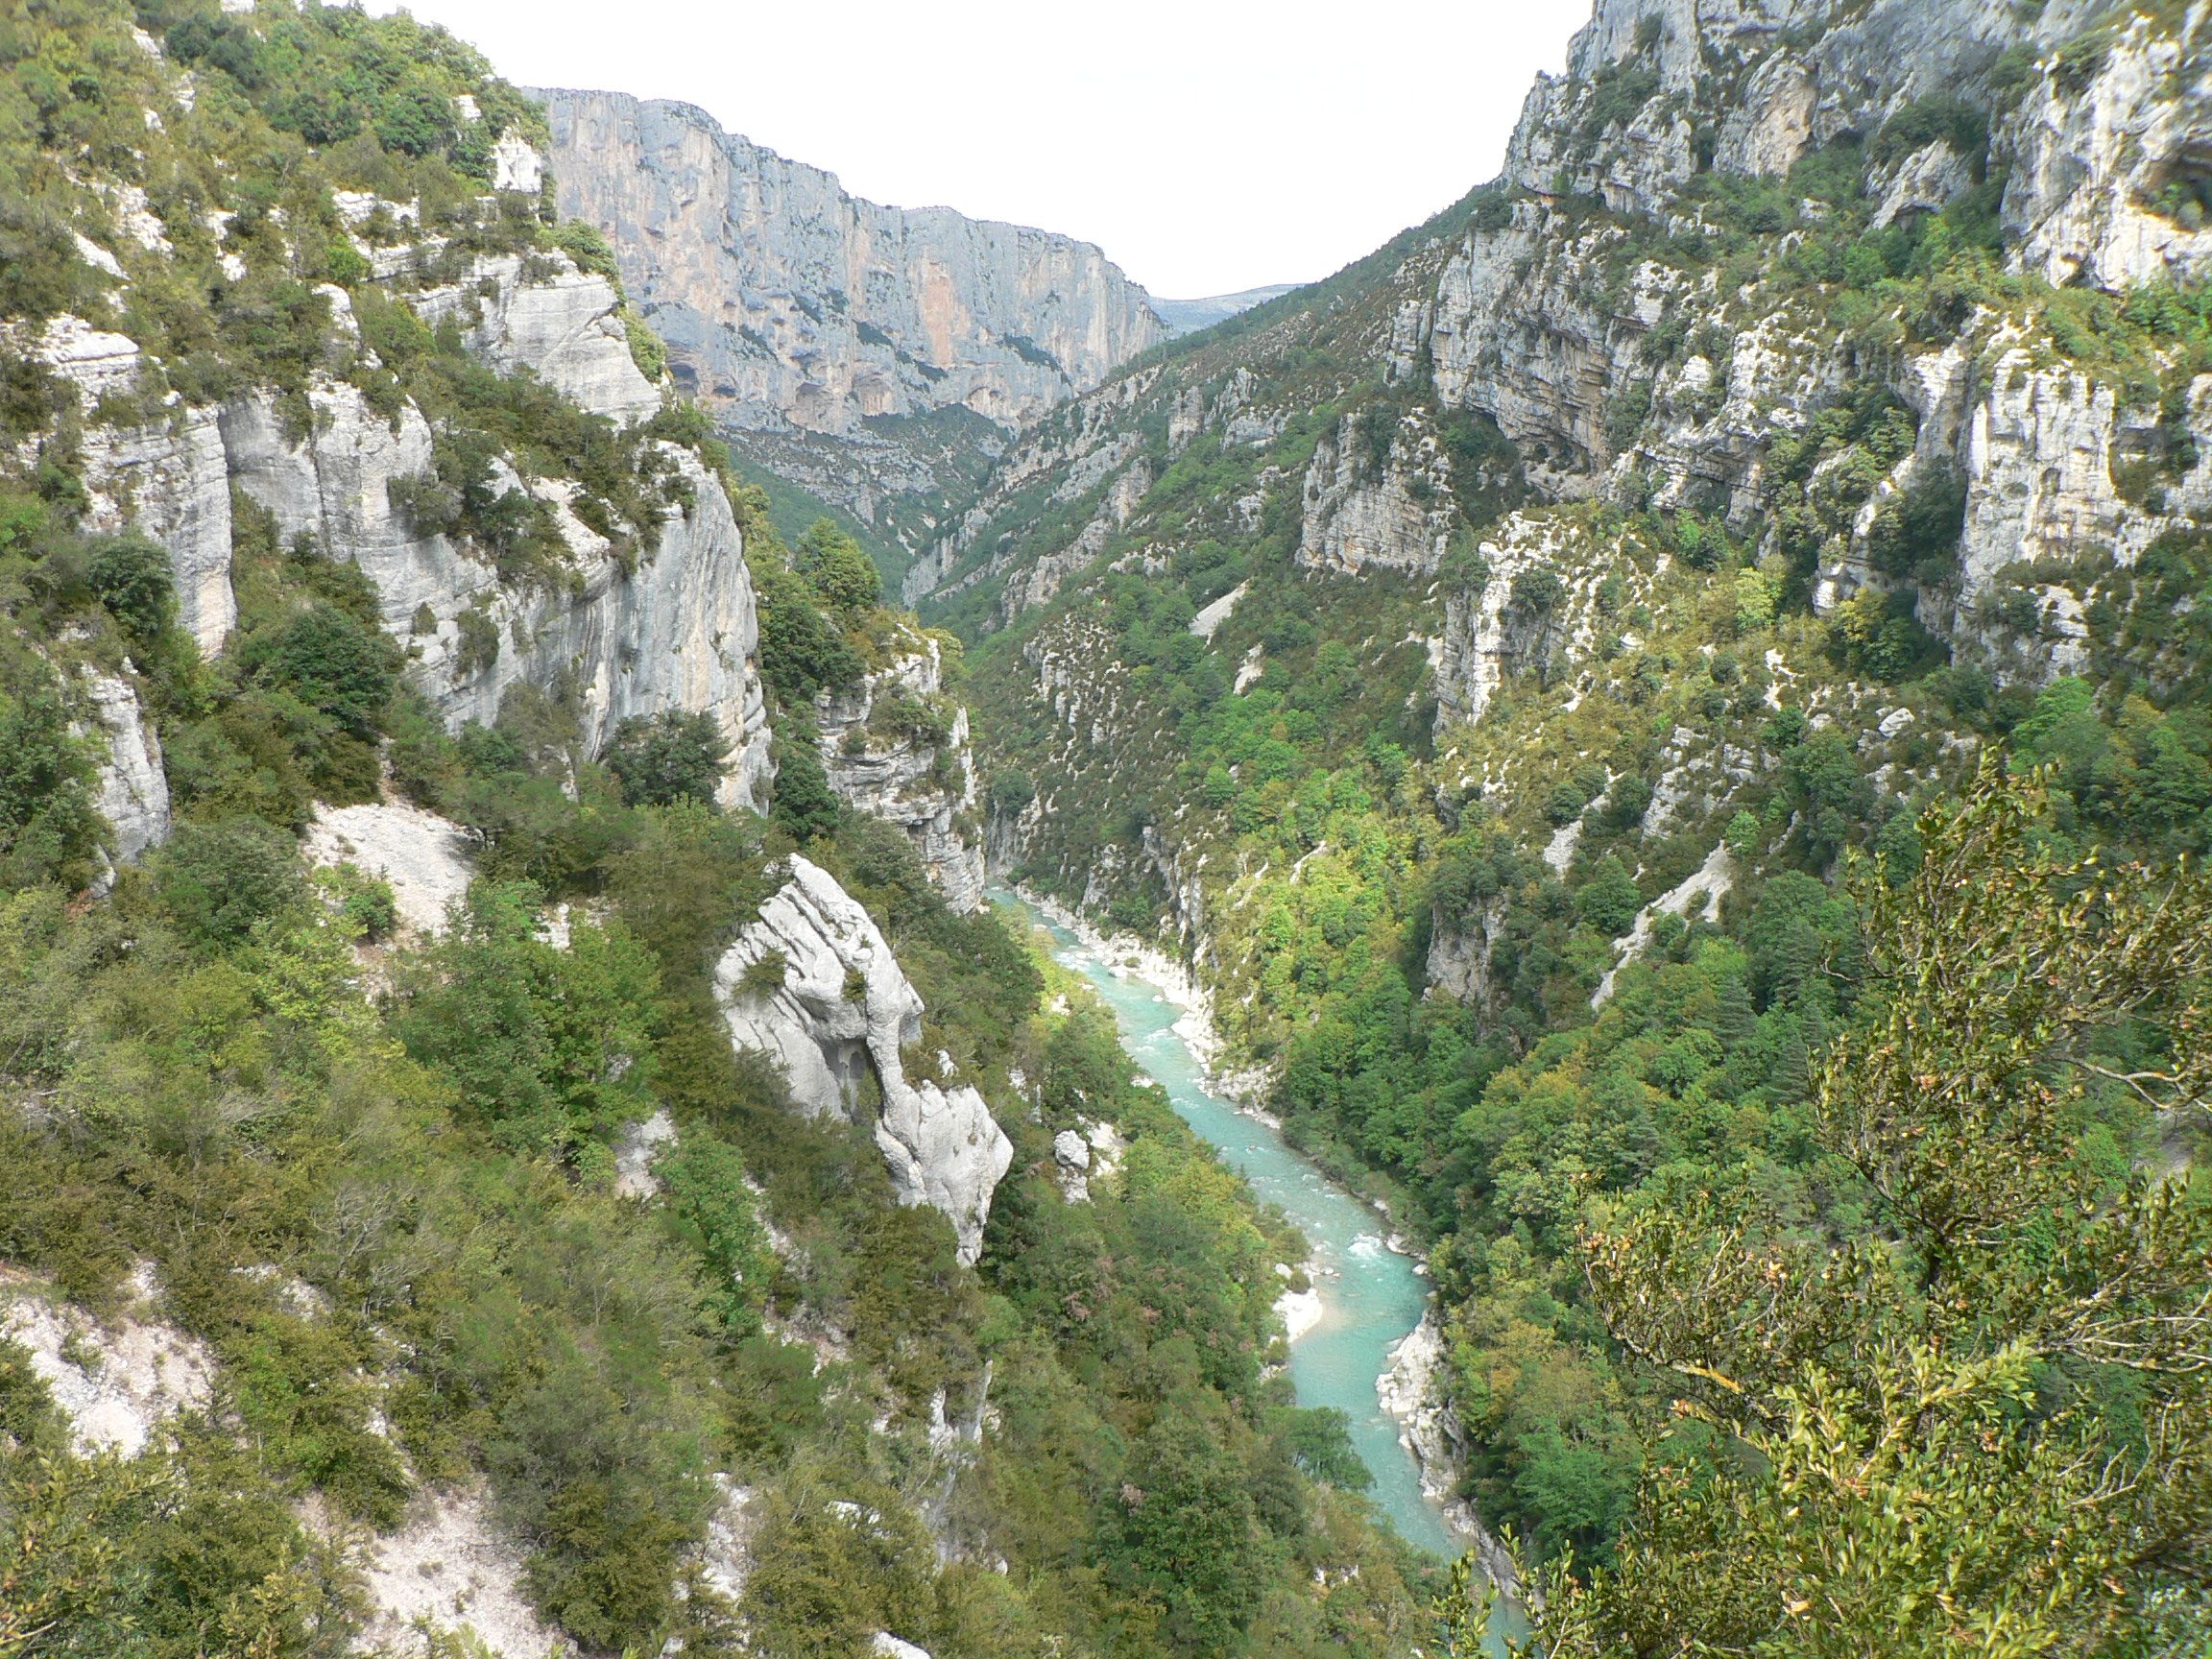 Grand Canyon & Gorges du Verdon